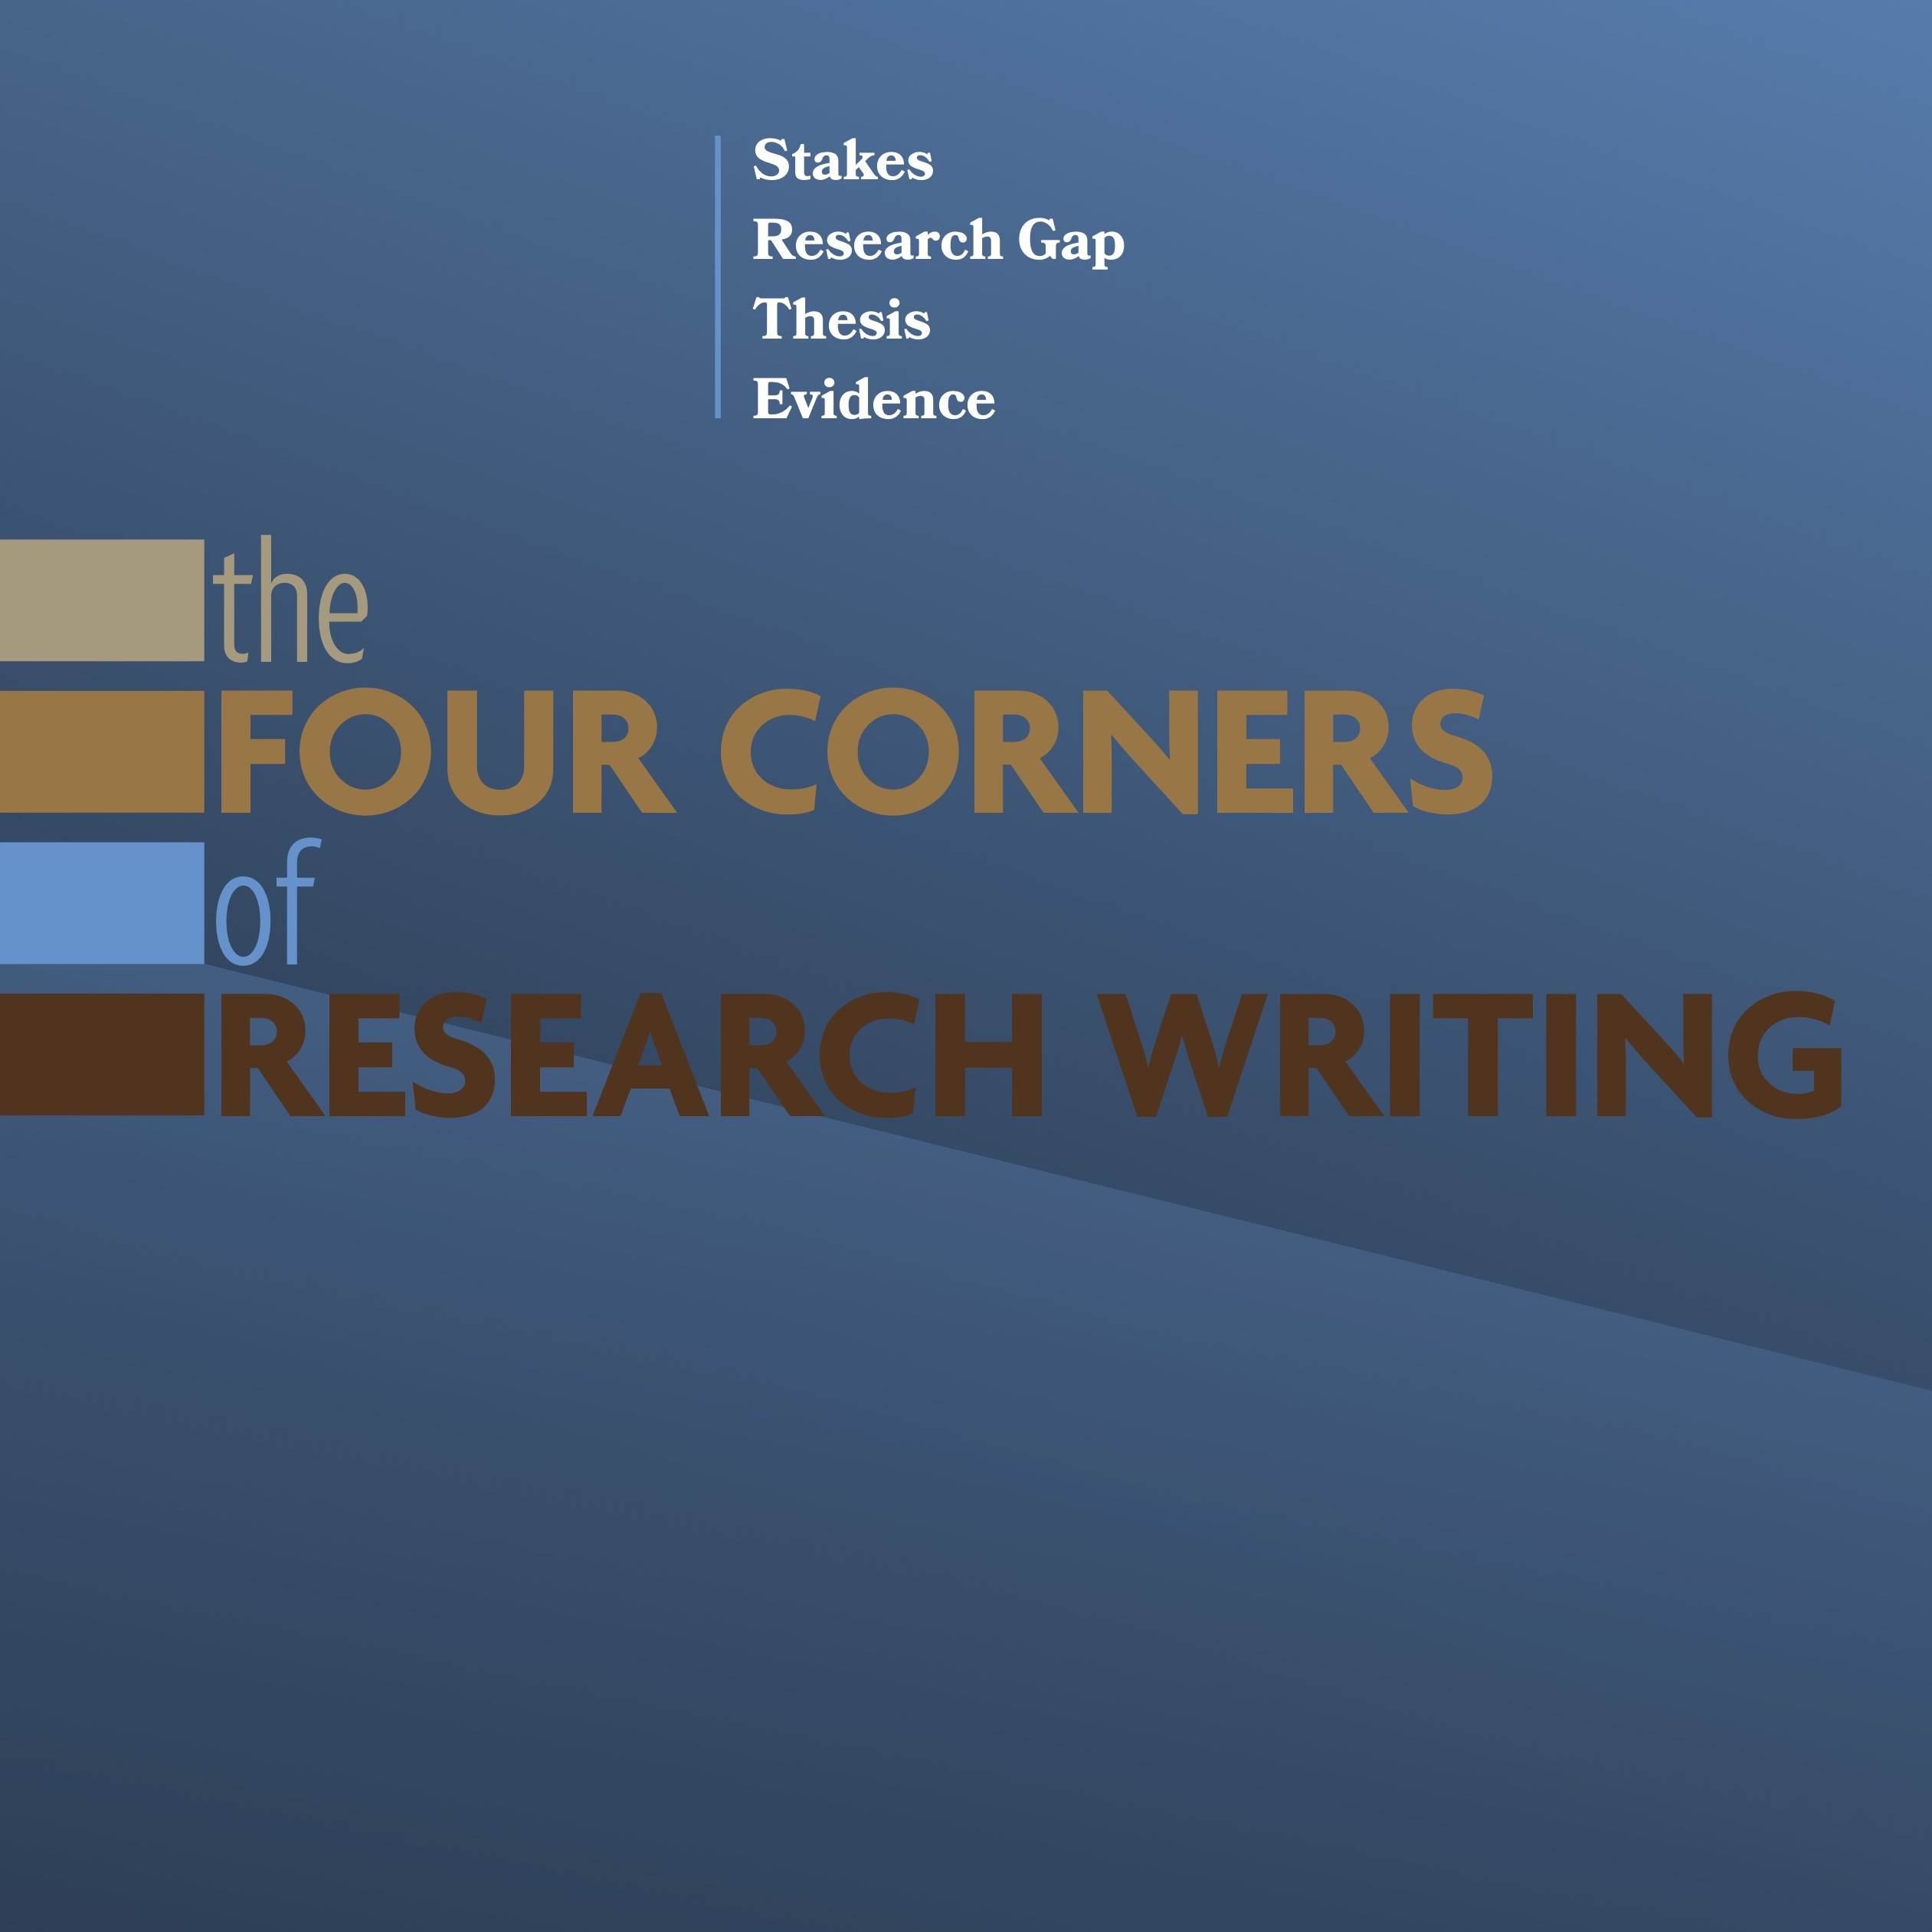 The cover of The Four Corners of Research Writing